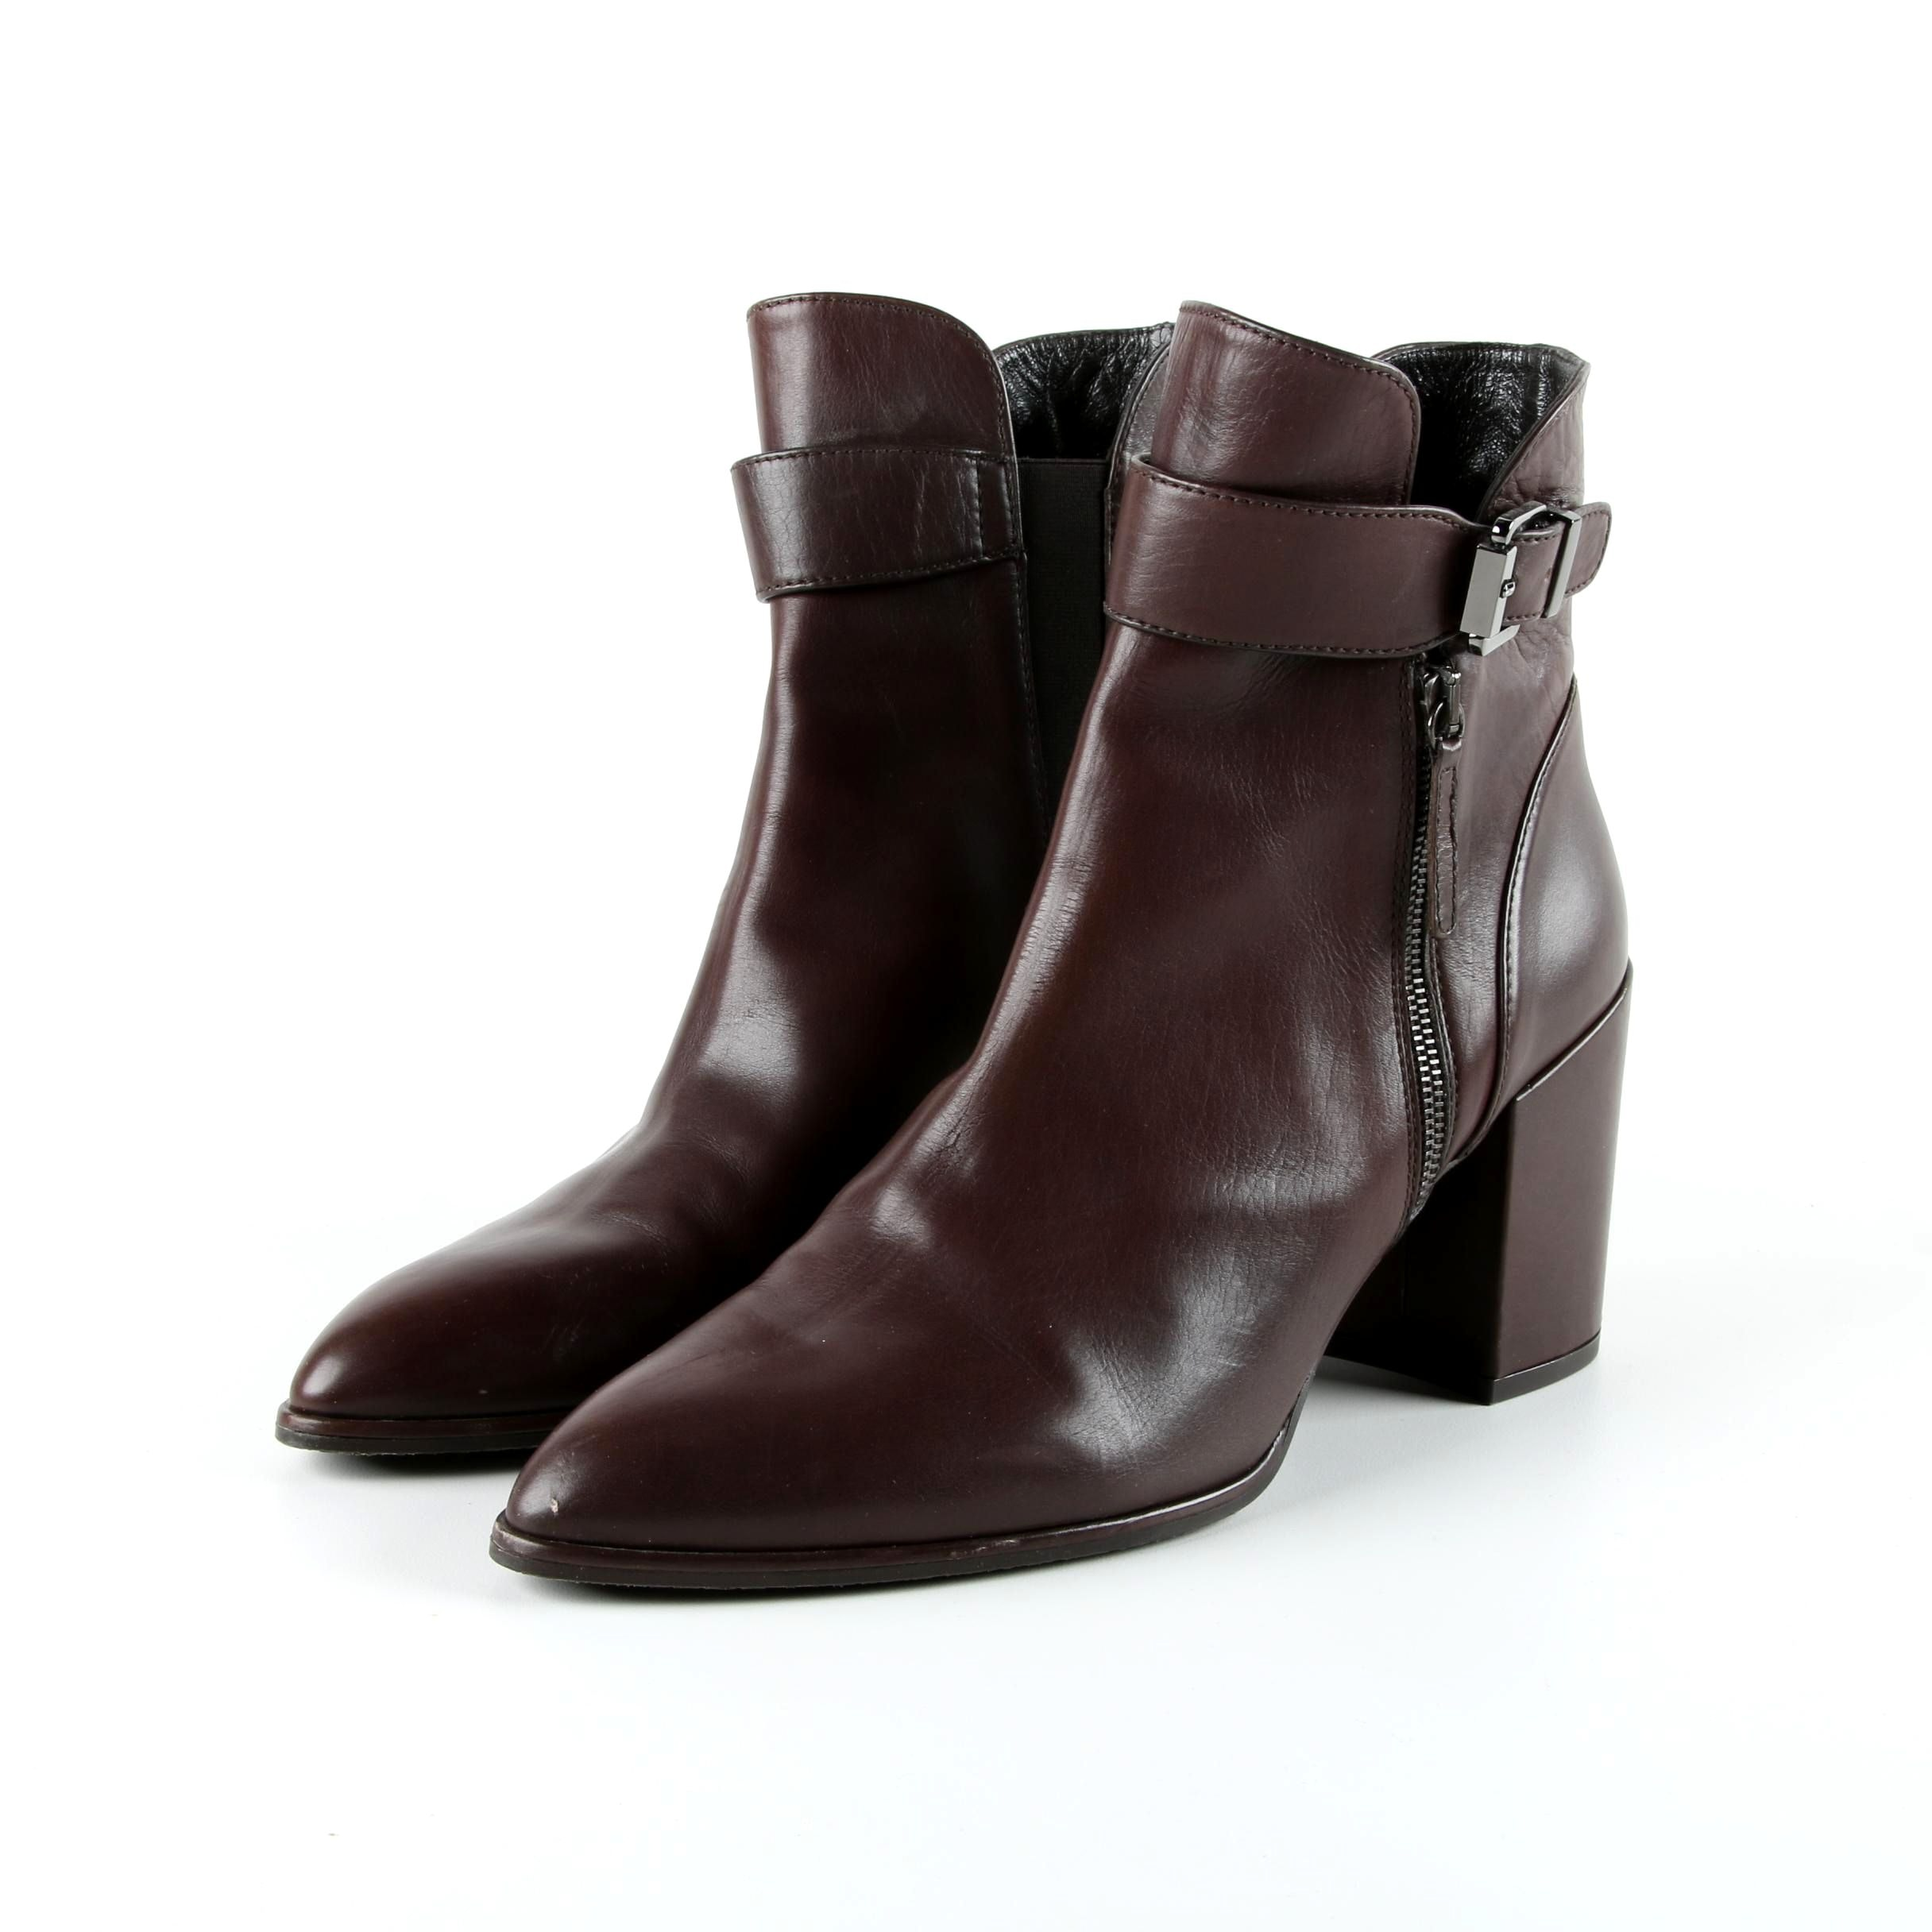 Stuart Weitzman Brown Leather Chunky Heel Ankle Boots